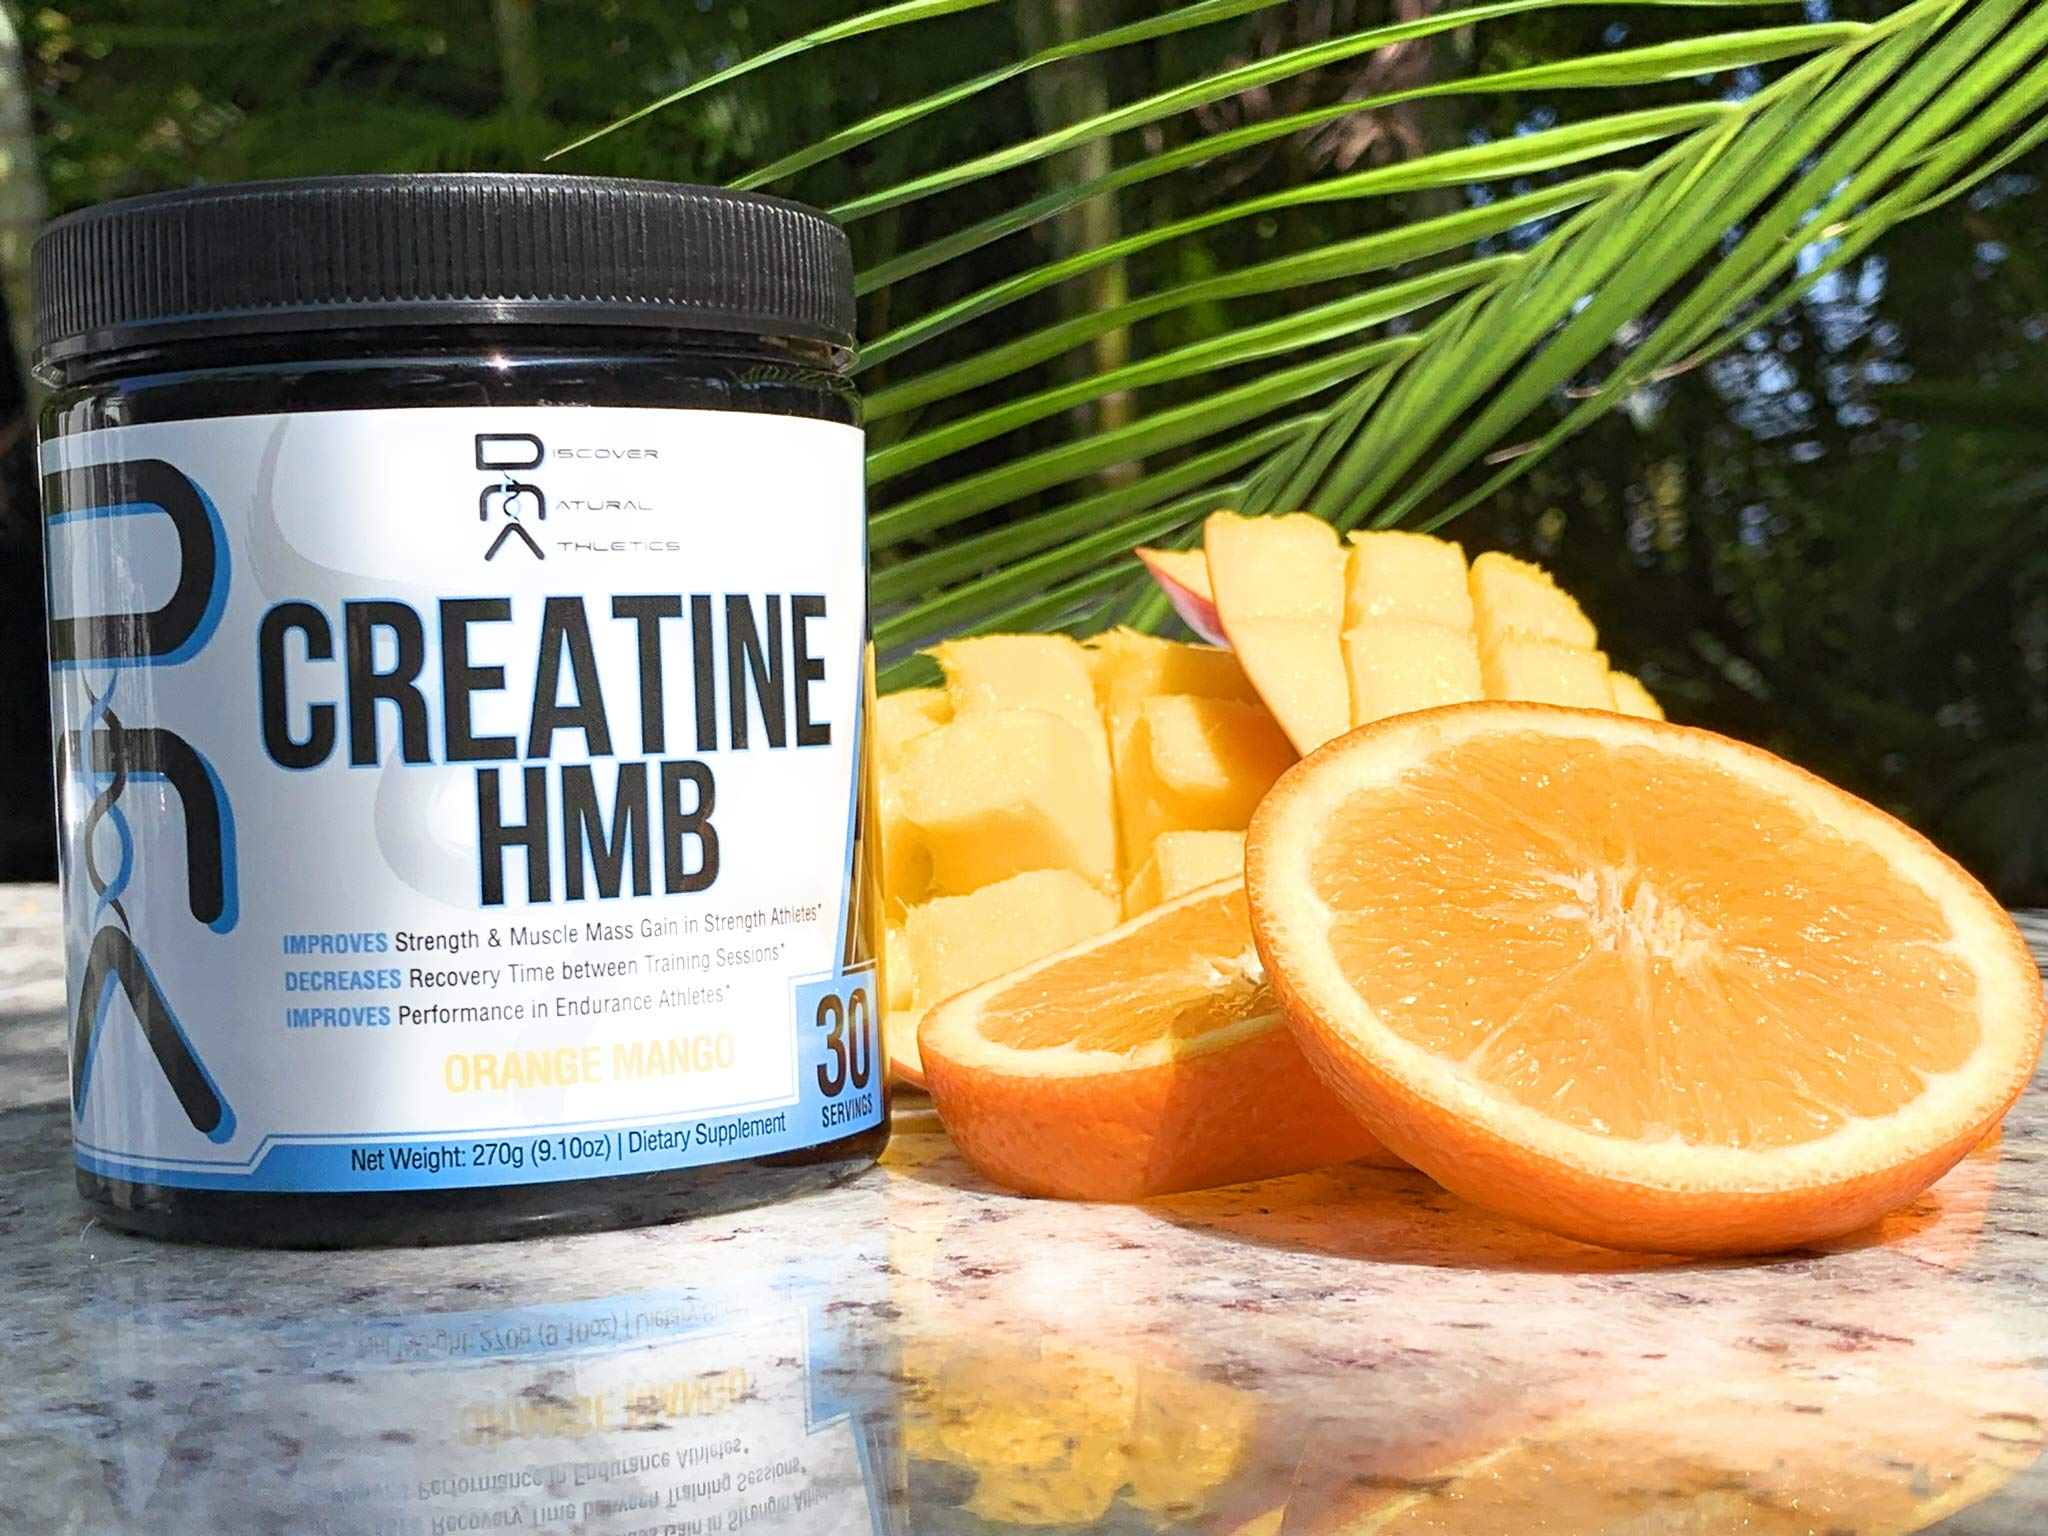 Creatine HMB - Discover Natural Athletics - DNA - Creatine + HMB for Men and Women, Increase Muscle Size and Strength, Improve Workout Recovery - 30 Servings by Discover Natural Athletics